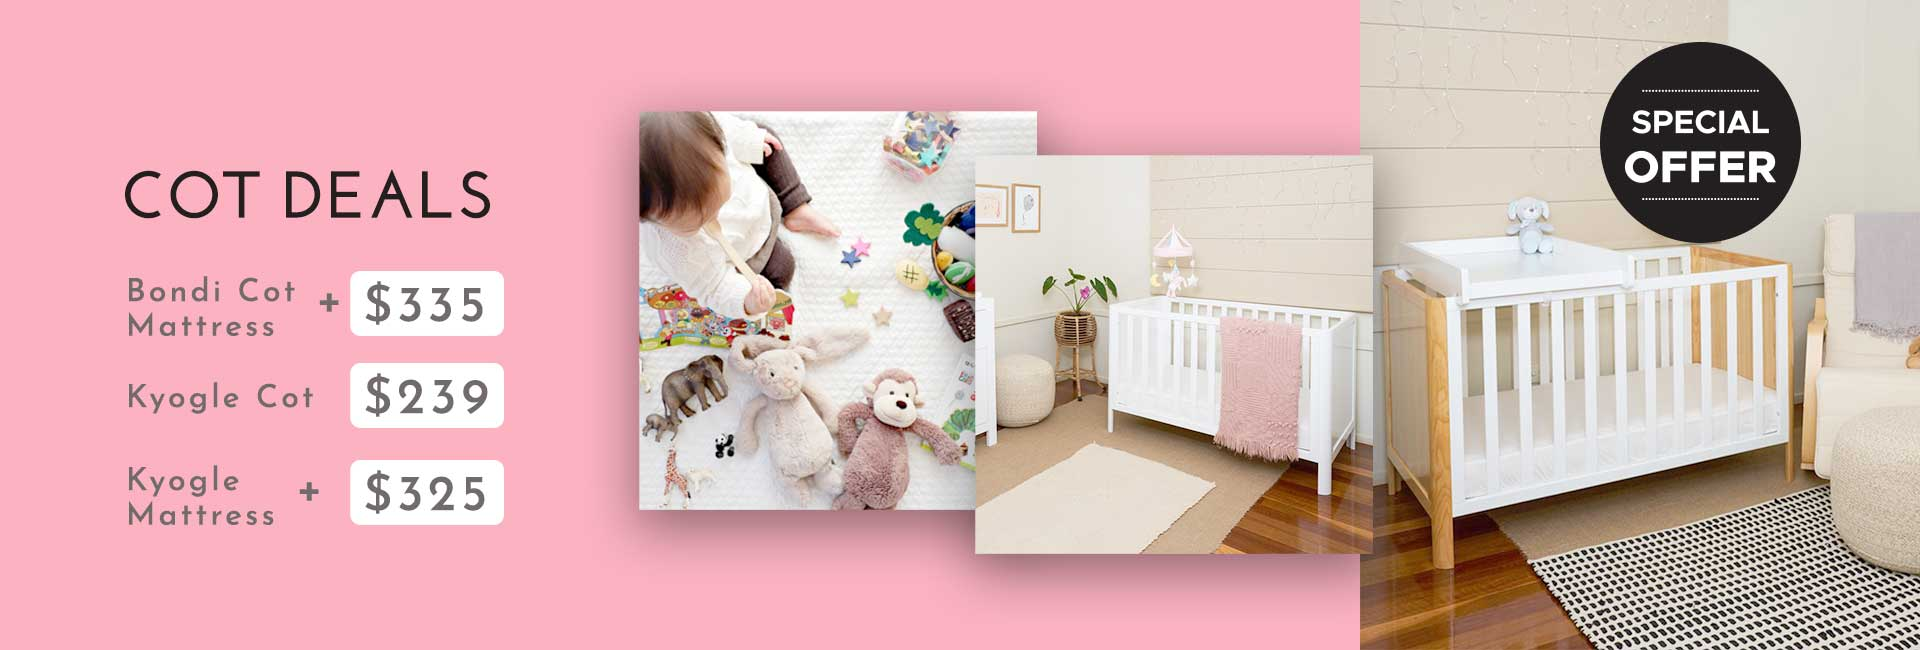 Bondi Cot & Kyogle Cot Package Deals and Sale On Now